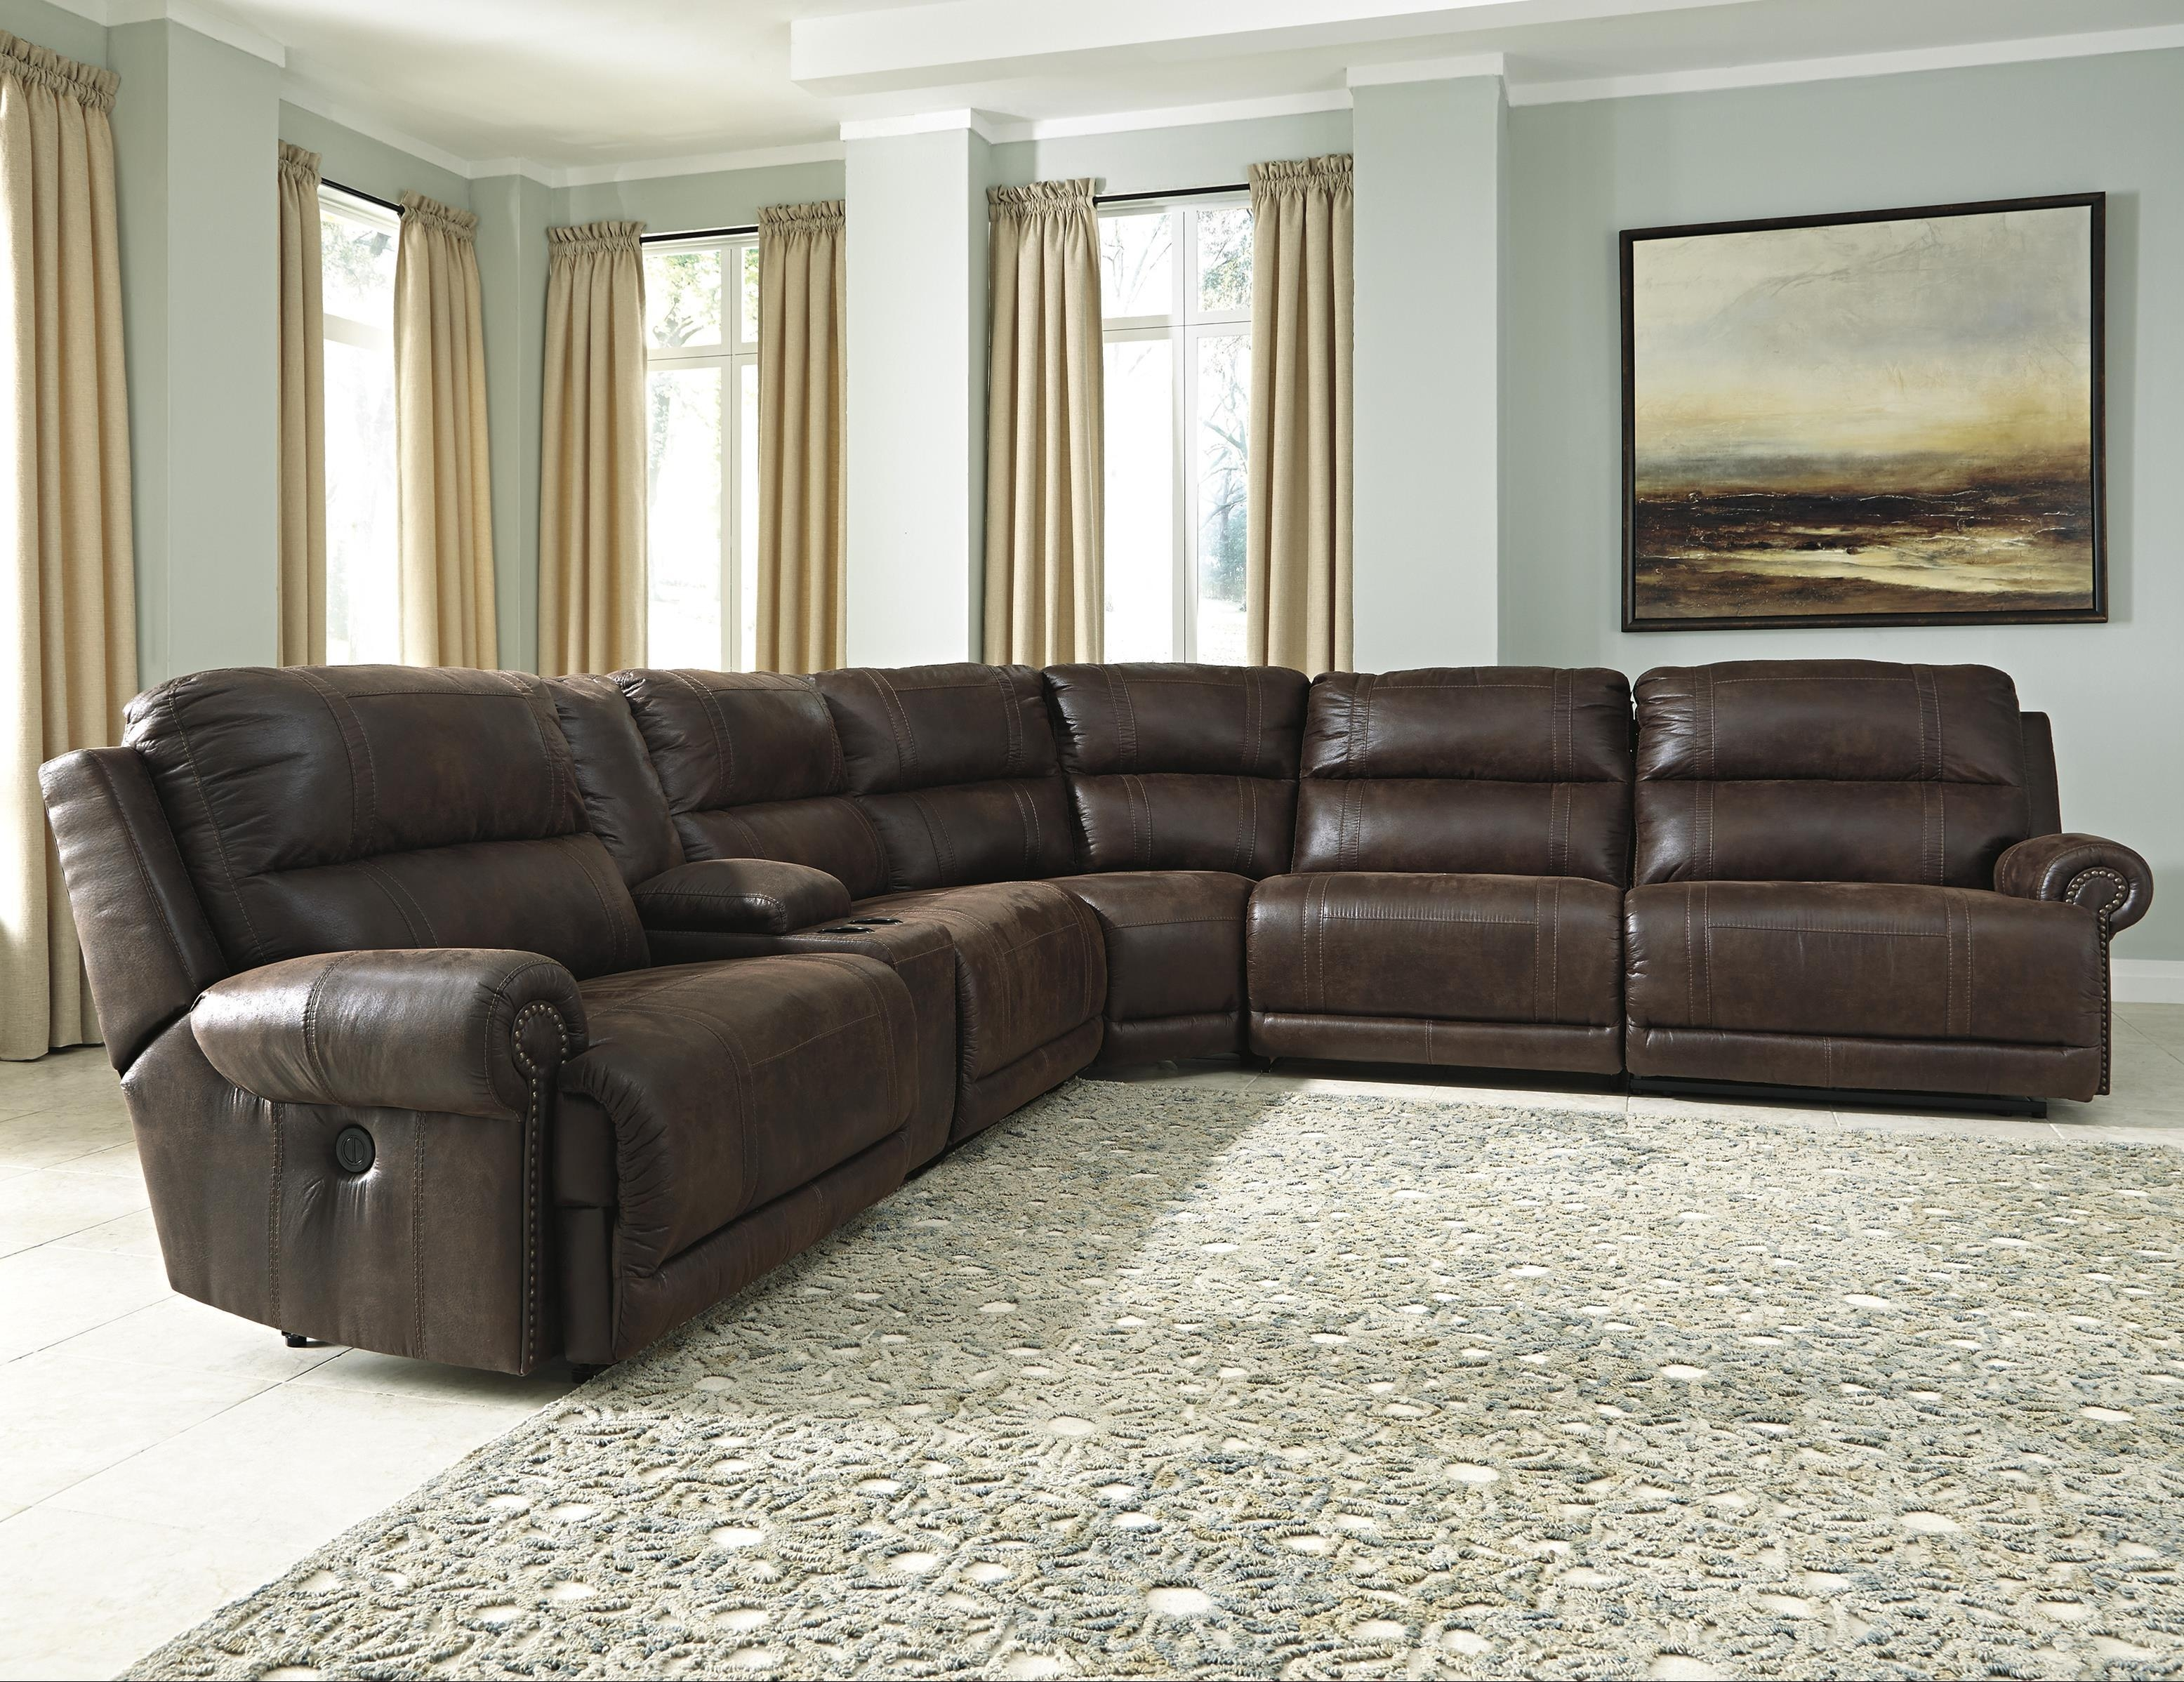 Signature Designashley Luttrell 6 Piece Reclining Sectional Inside 6 Piece Sectional Sofas Couches (Image 18 of 20)